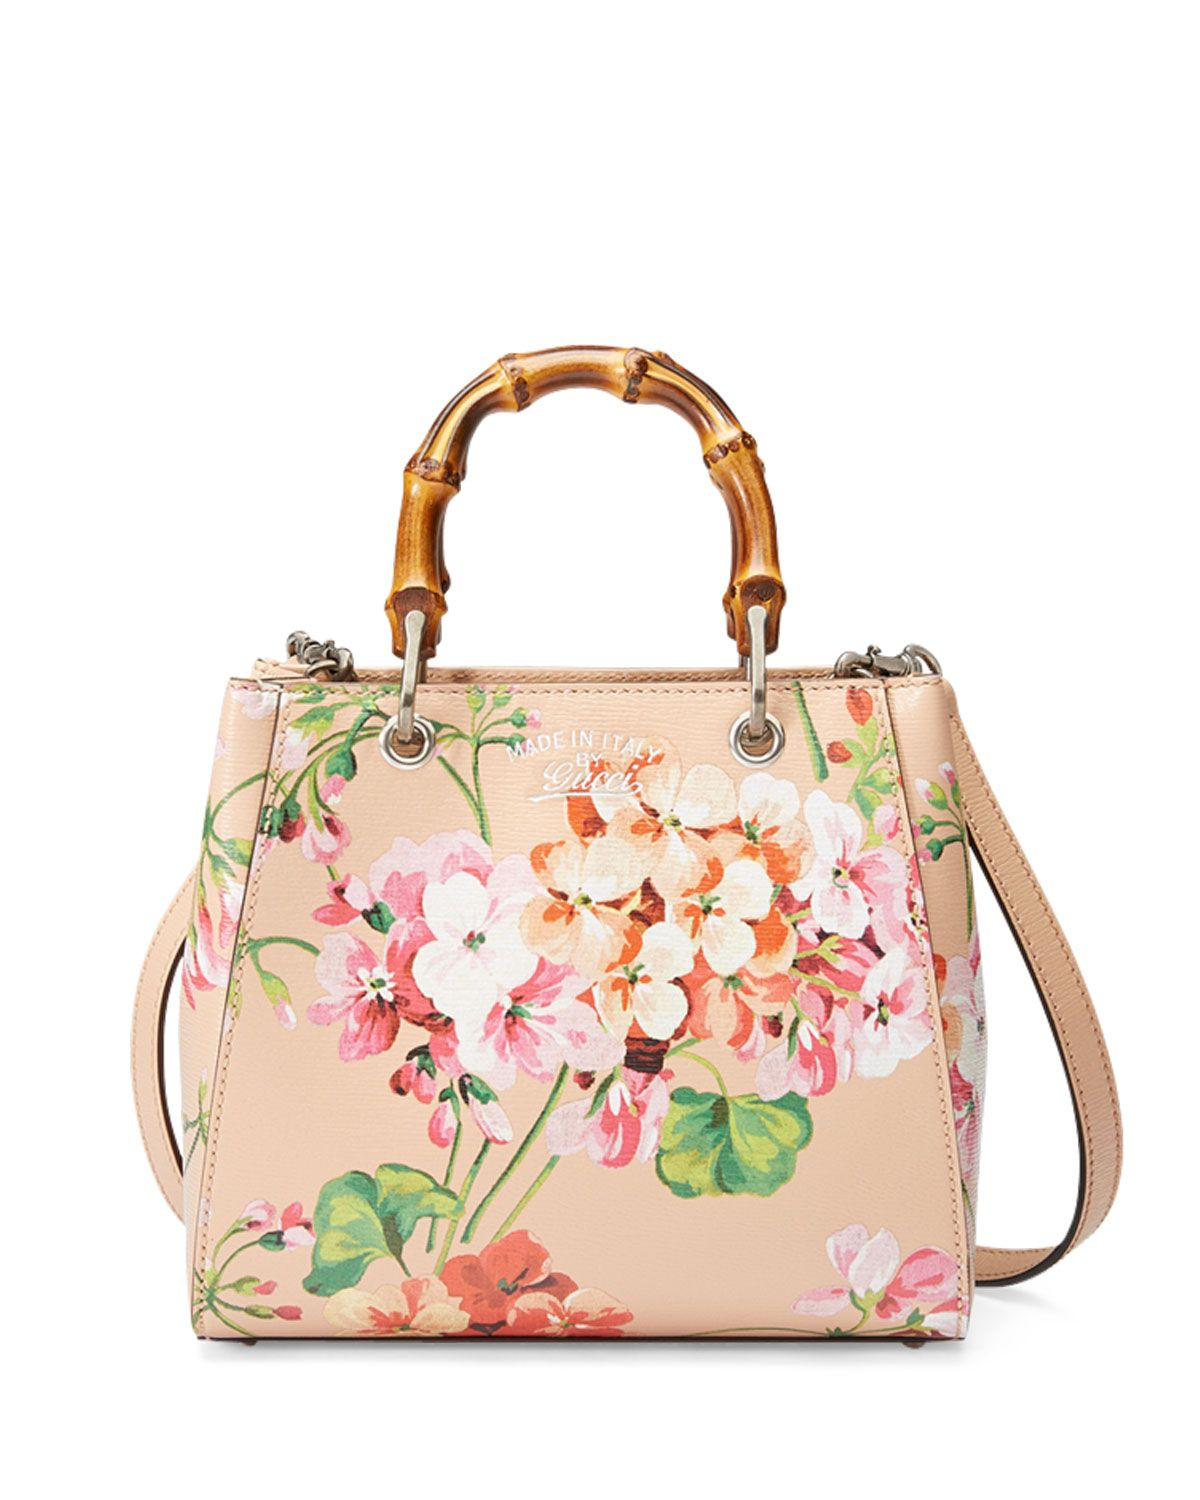 Gucci Bamboo Shopper Mini Blooms Crossbody Bag d08d2838f39a